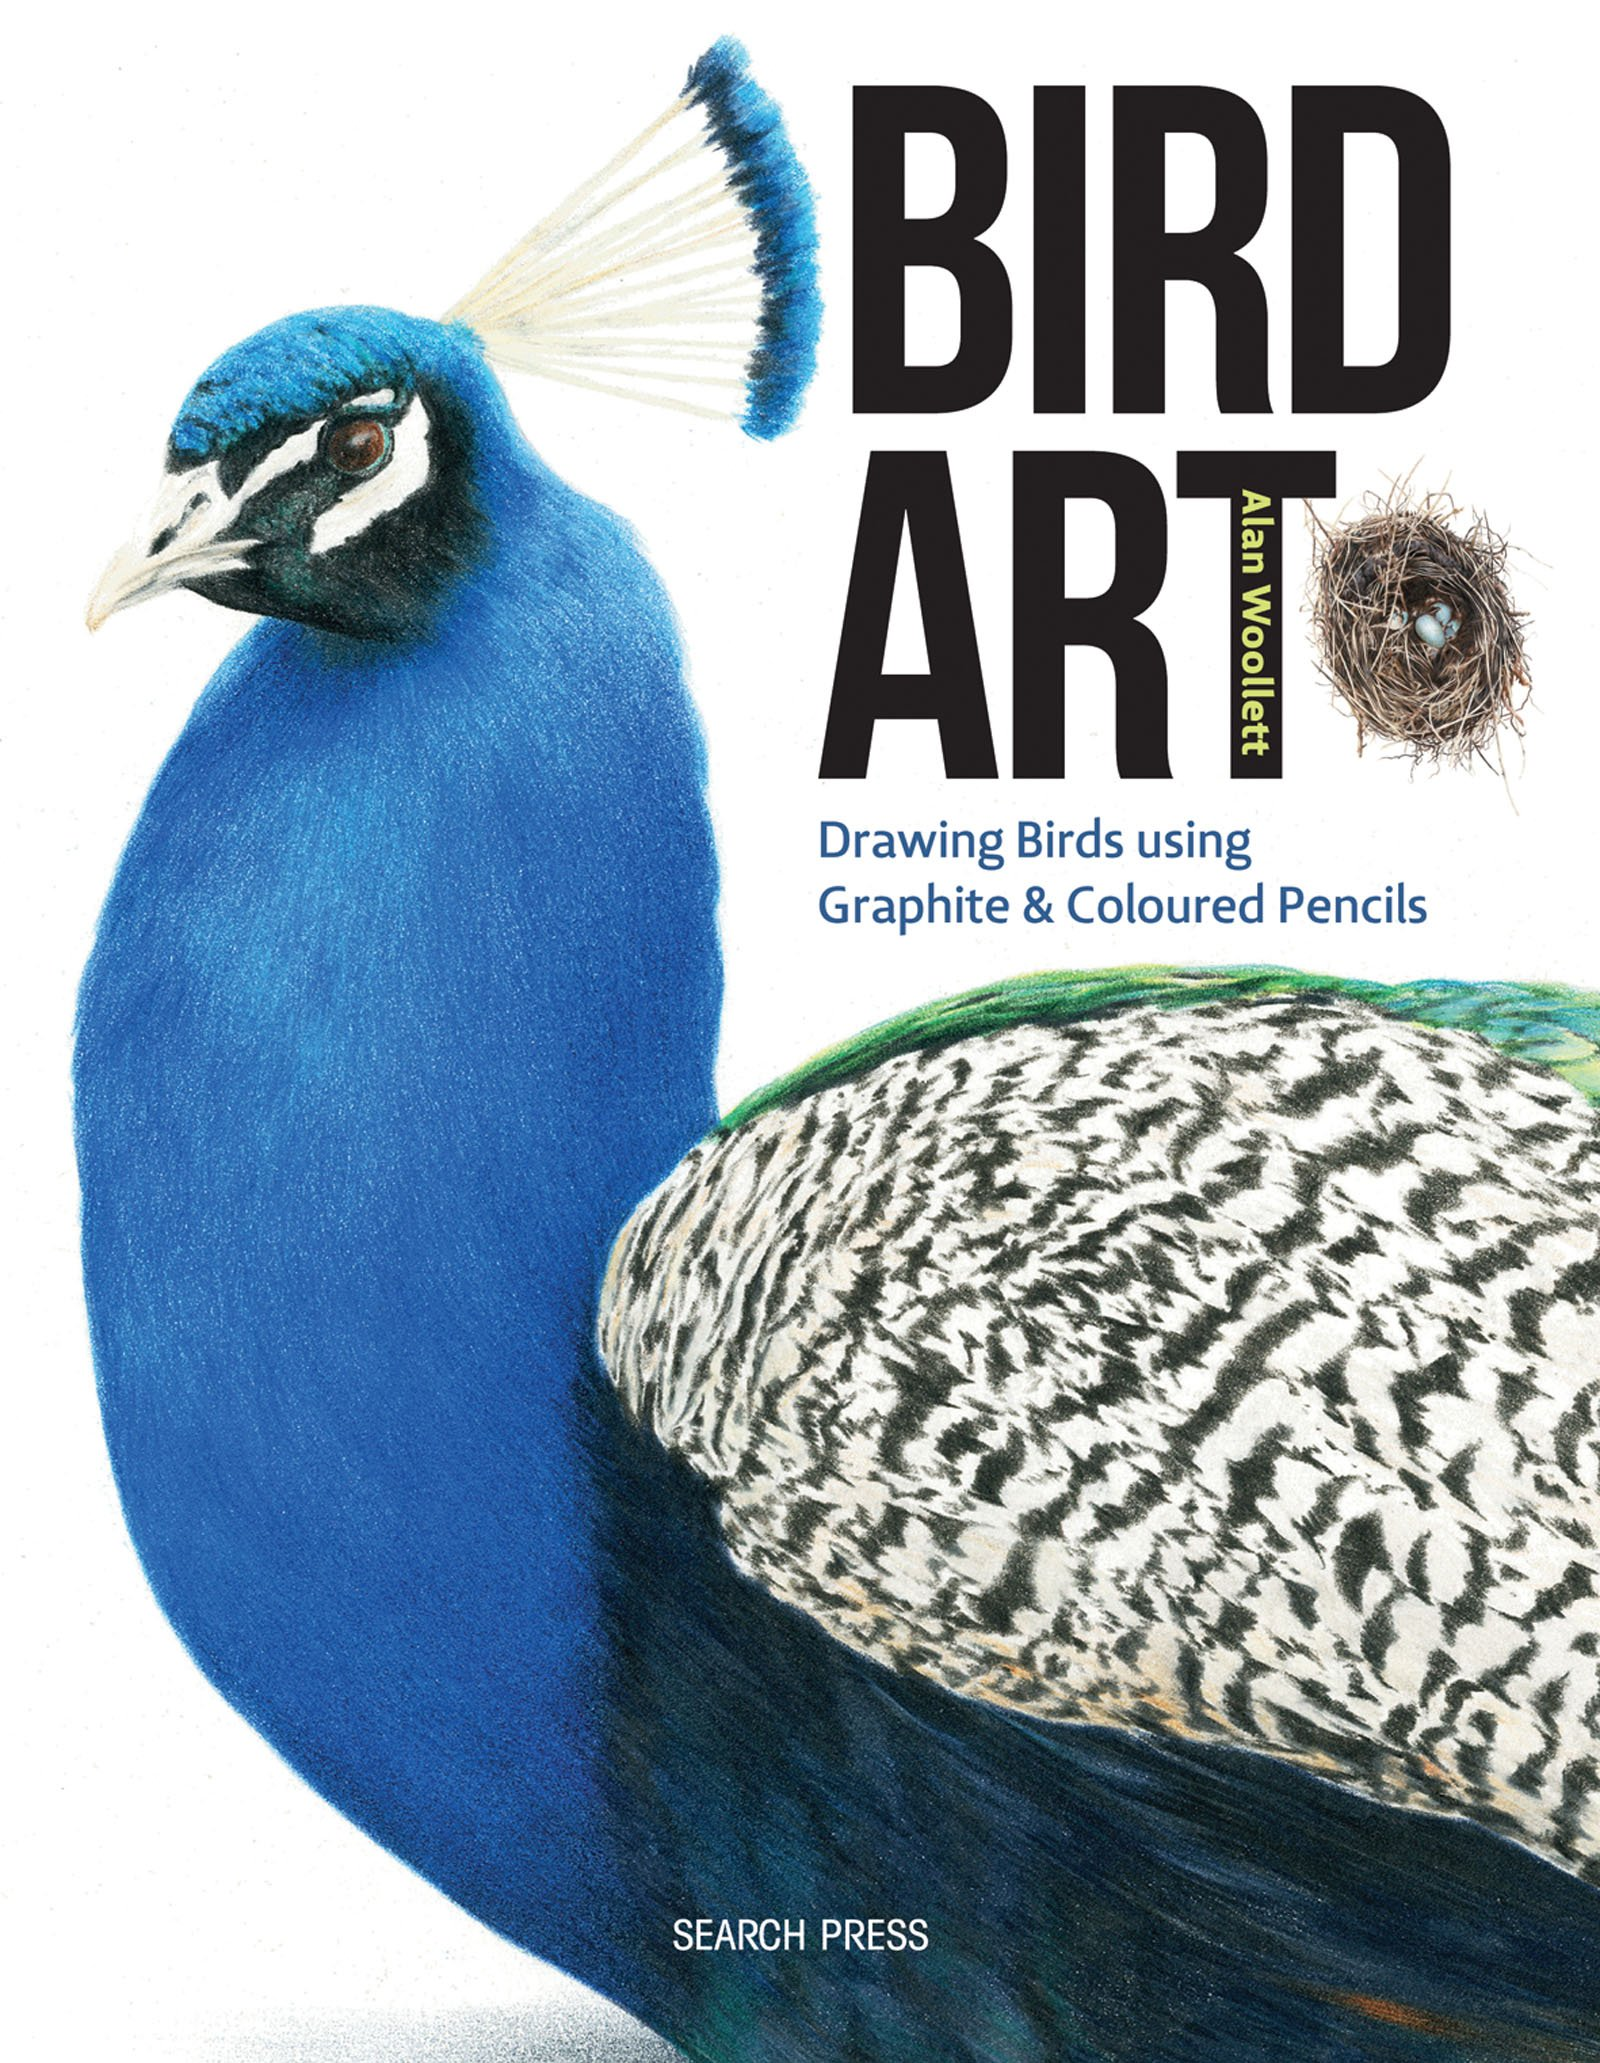 Bird Art by Alan Woollett